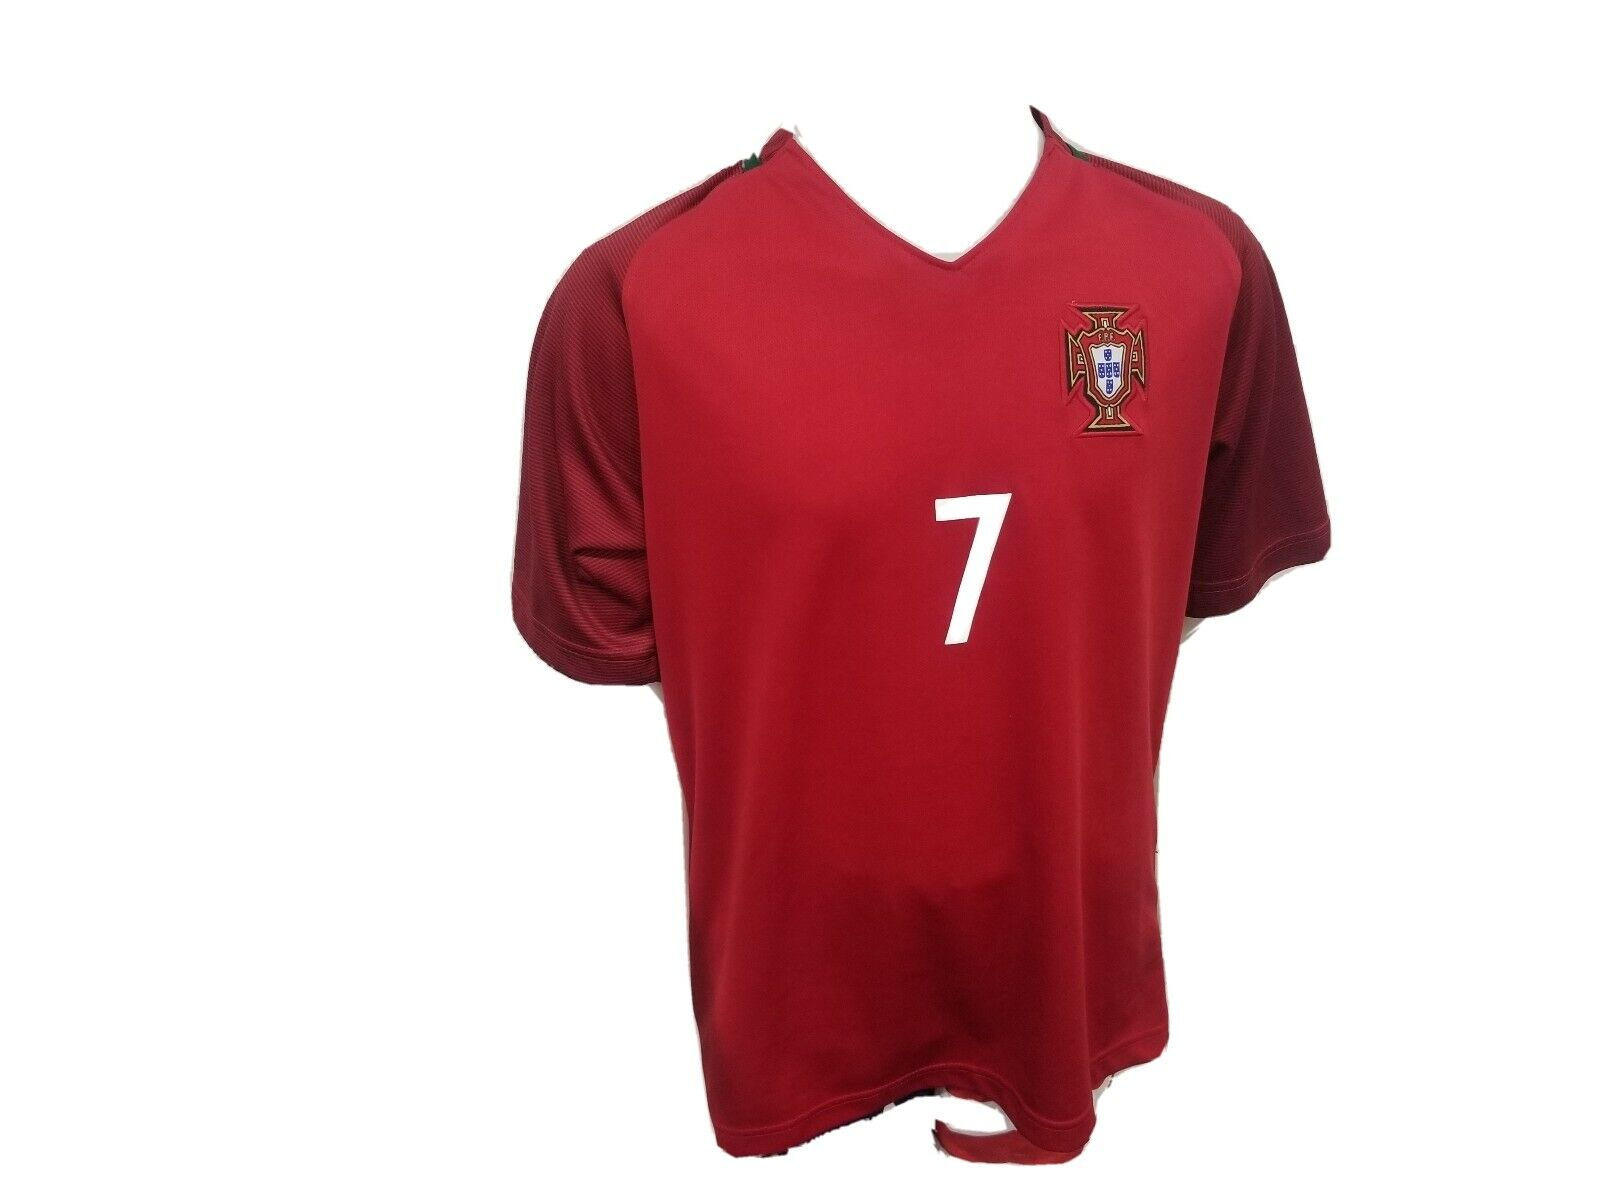 KID BOX 2018 Portugal Cristiano Ronaldo #7 Home Red Kids Soccer Football Jersey Gift Set Youth Sizes